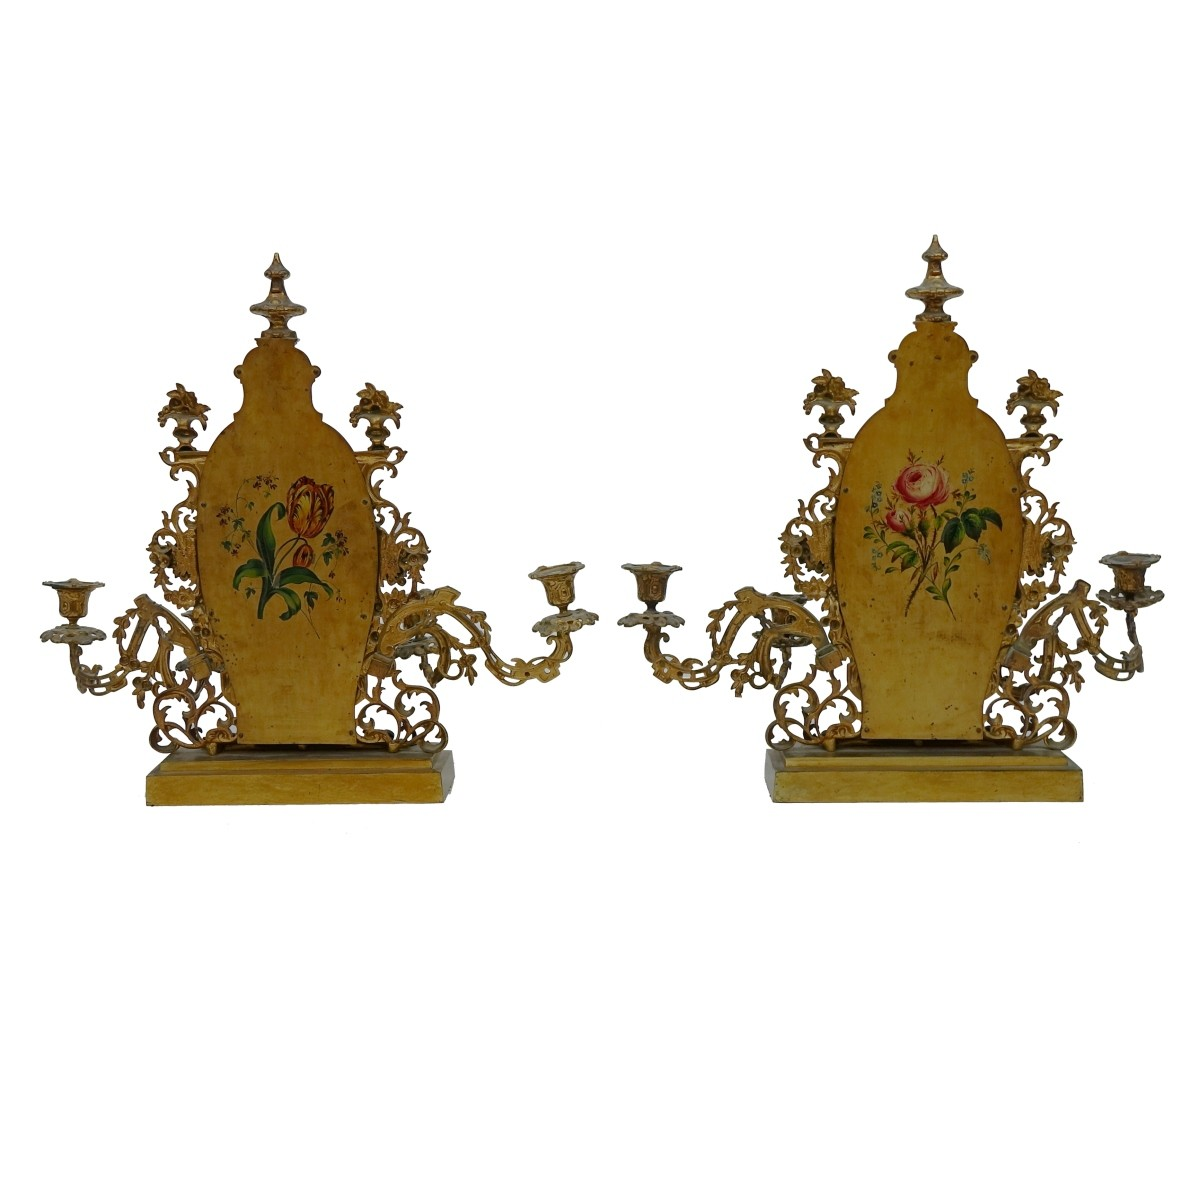 Pair of Table Sconces